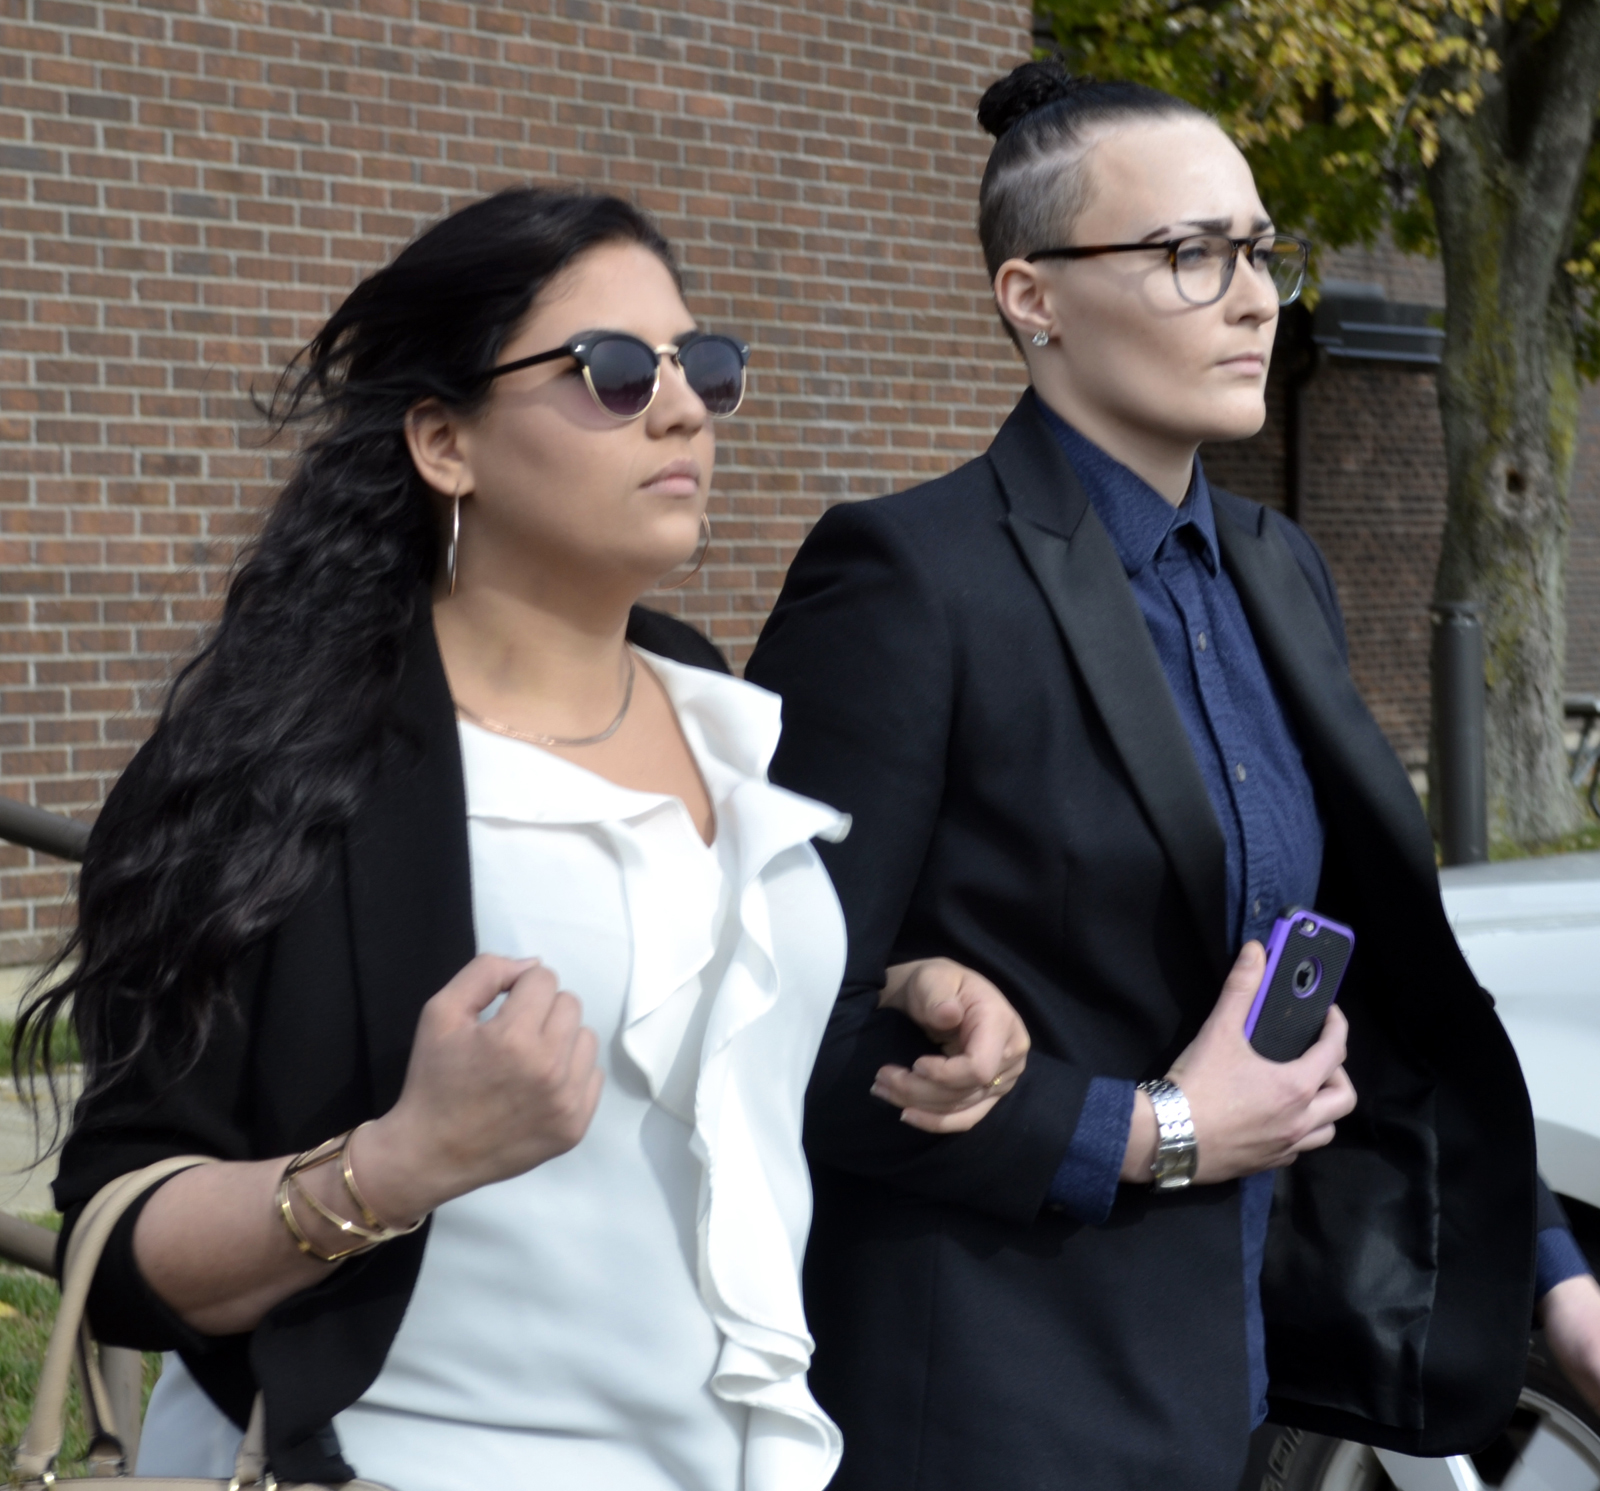 Carly Marrs, on left,  appeared in Wheatfield Town Court on Wednesday, Oct. 26, 2016 and pleaded not guilty to charges related to a double-fatal crash. Marrs was charged with reckless driving, imprudent speed and unlawful possession of marijuana after her car hit pedestrians on  Shawnee Road shortly after midnight Aug. 20, 2016. (Photo by Larry Kensinger)